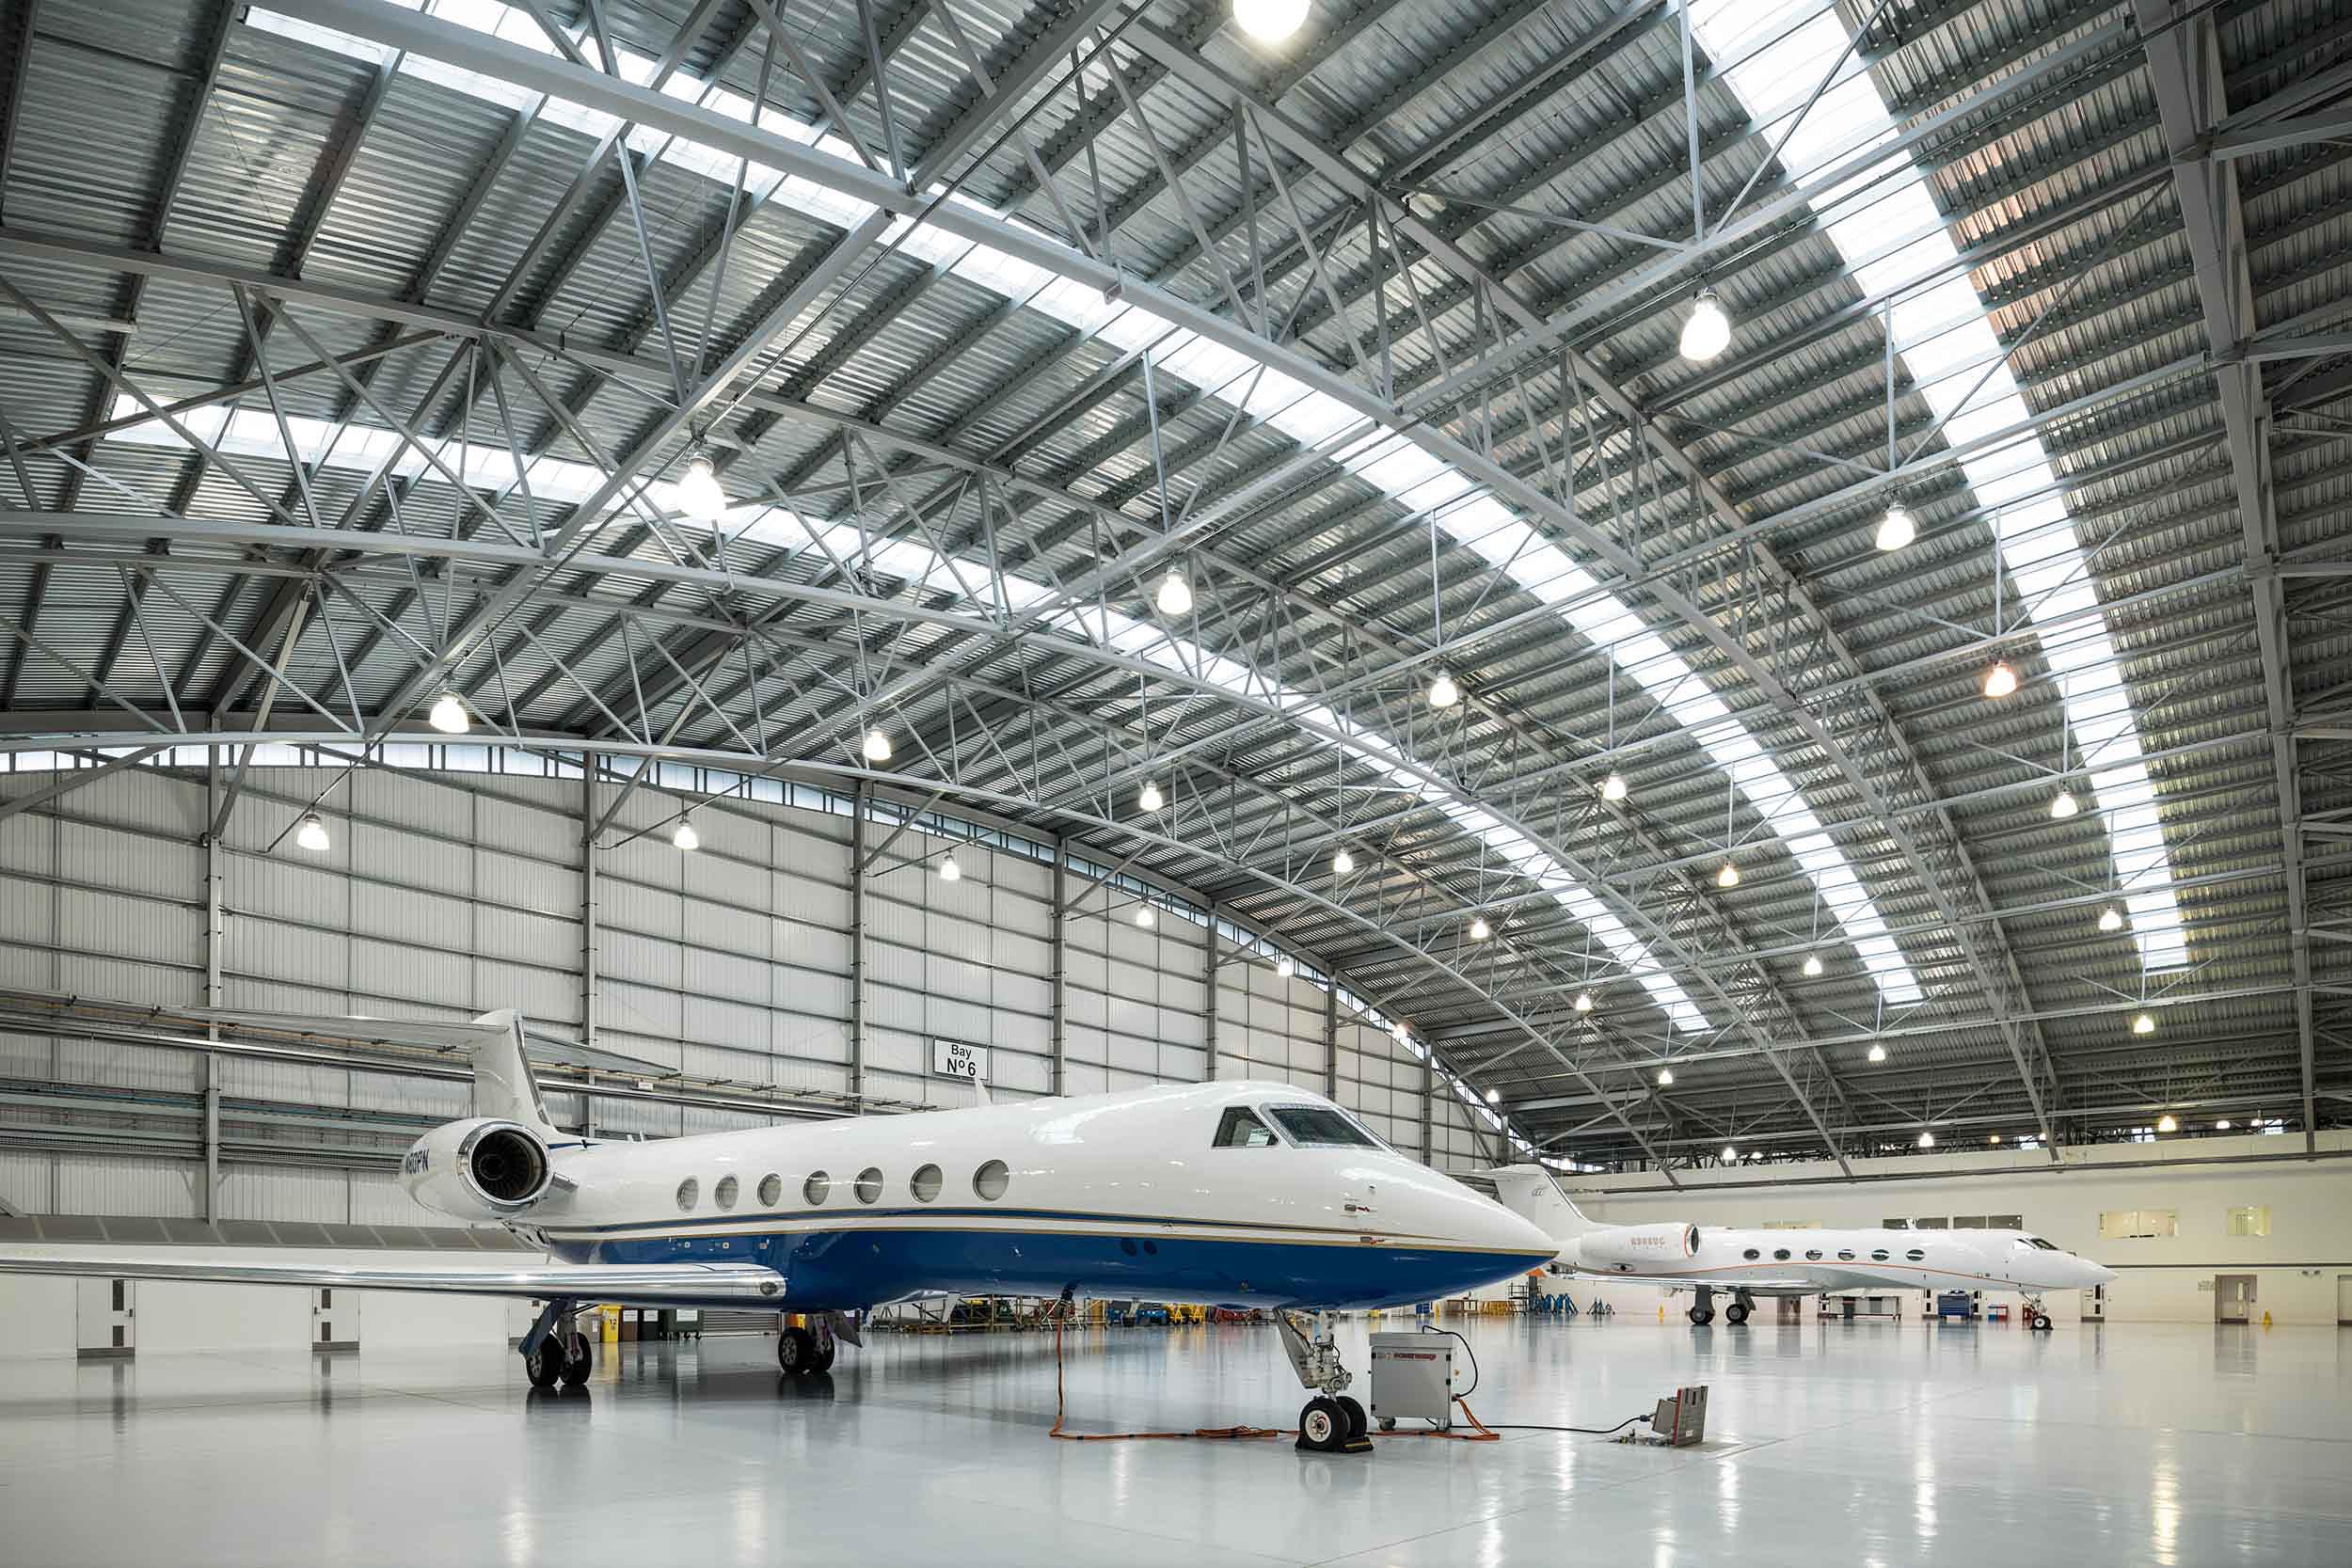 aircraft-hangar-gulfstream-jets-interior-airplane-airport-hampshire-uk